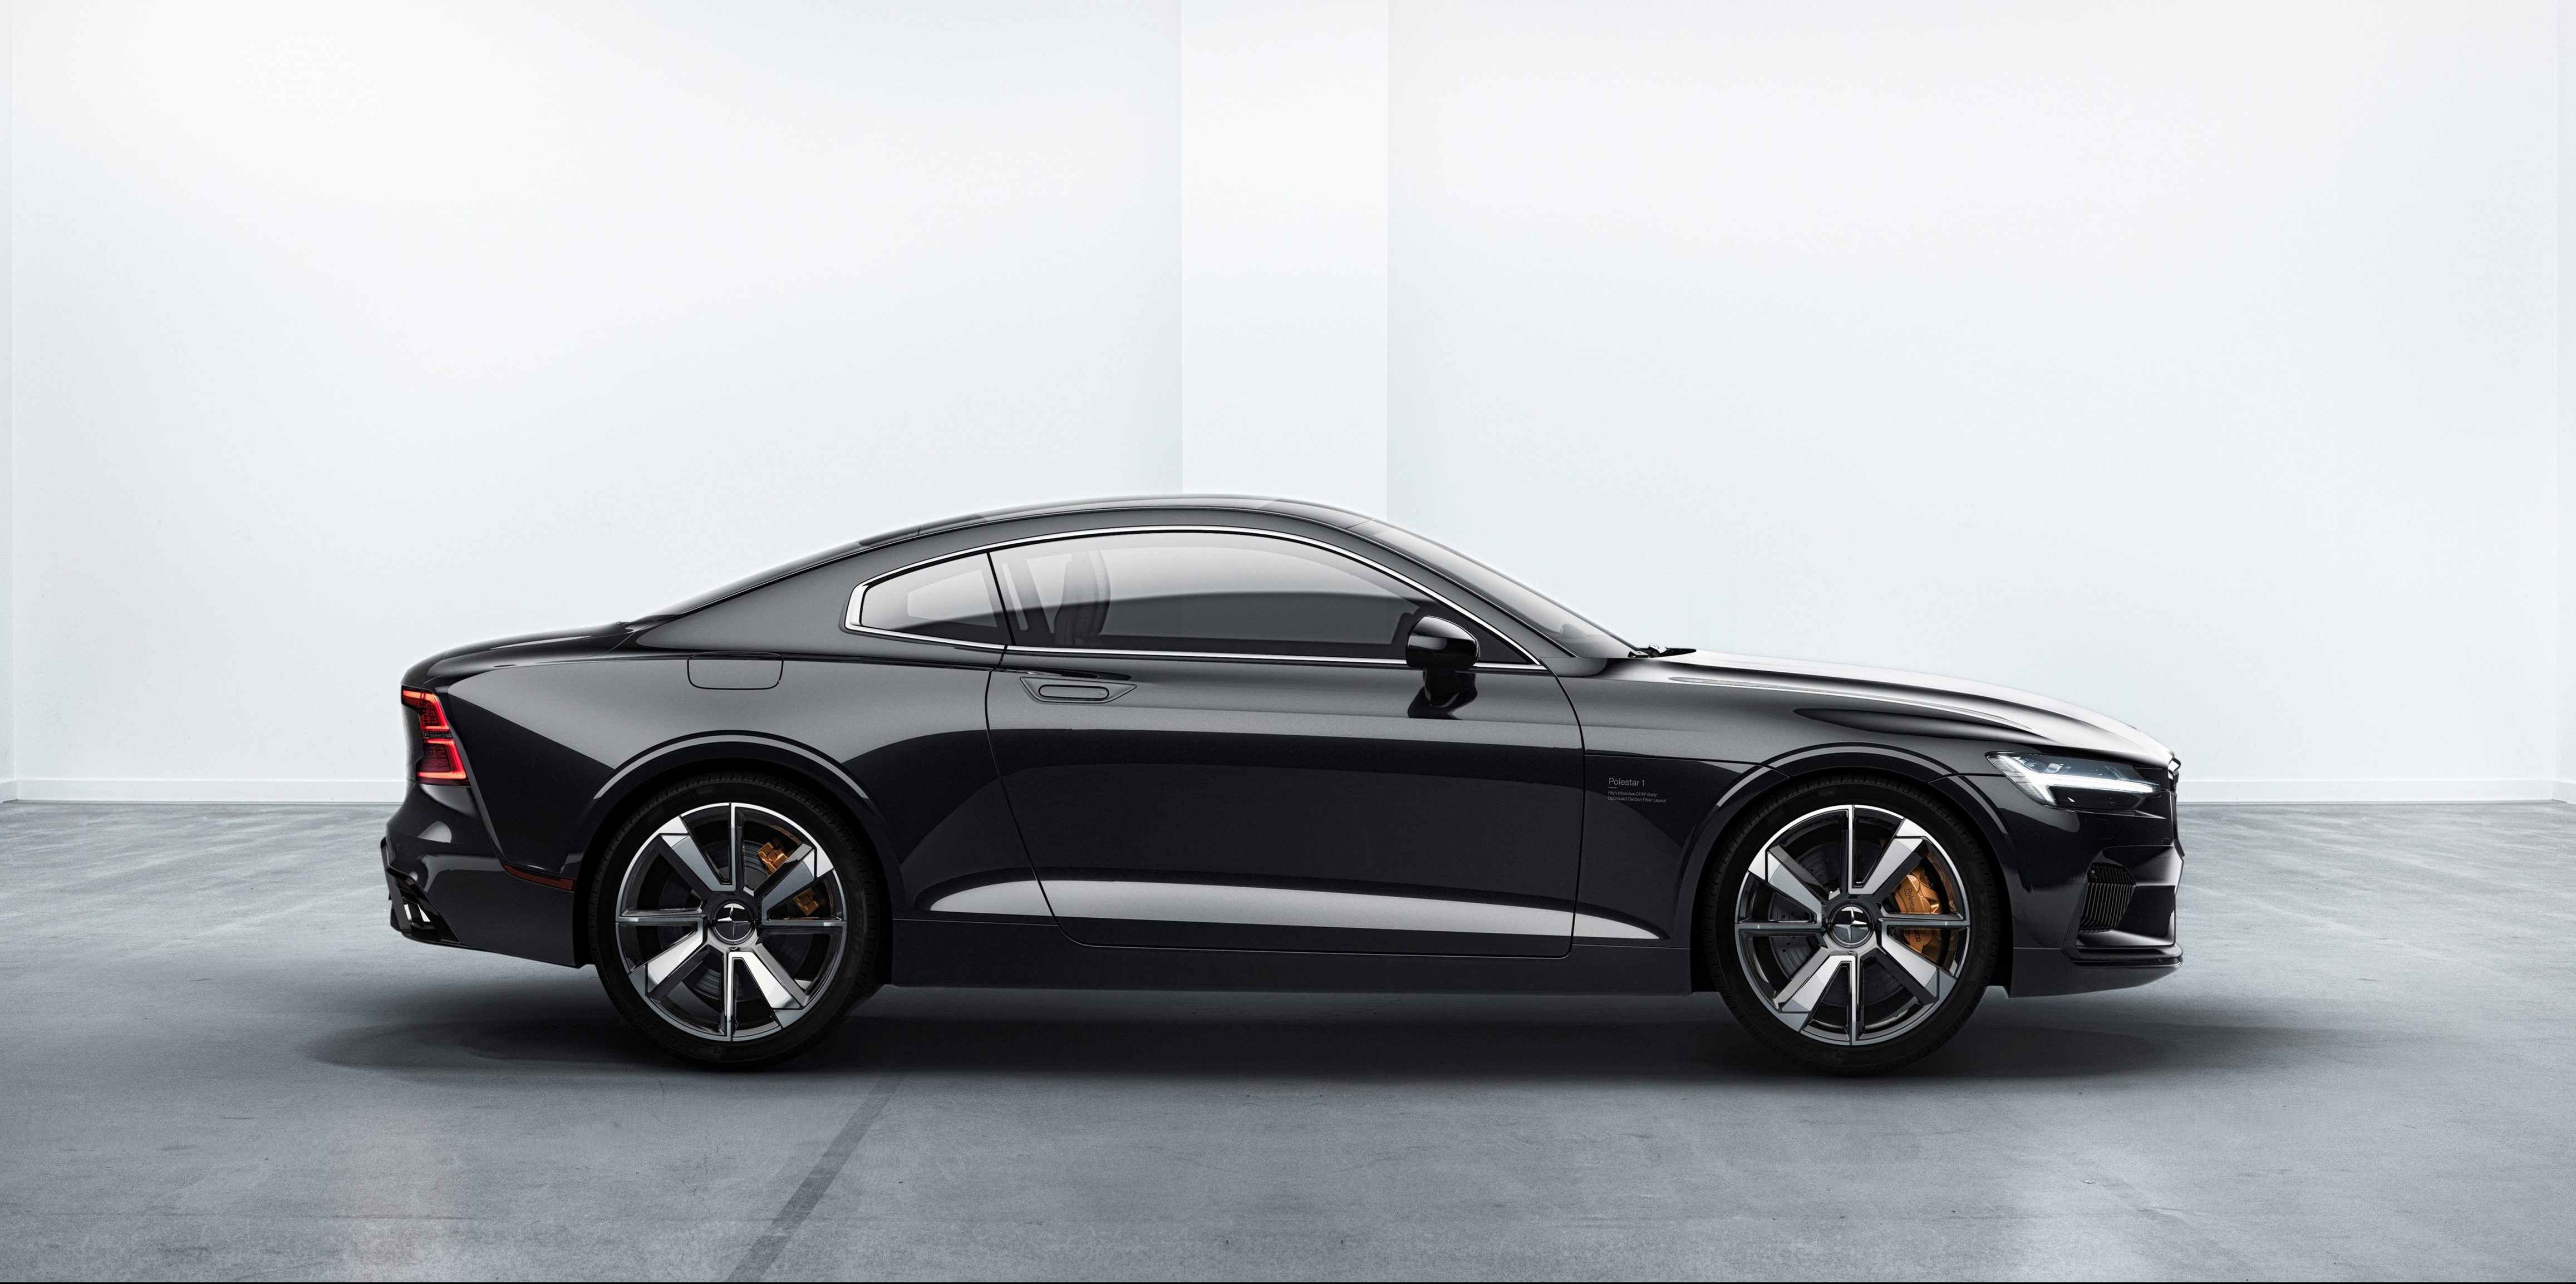 Polestar will release a competitor Tesla model 3 in 2019 1